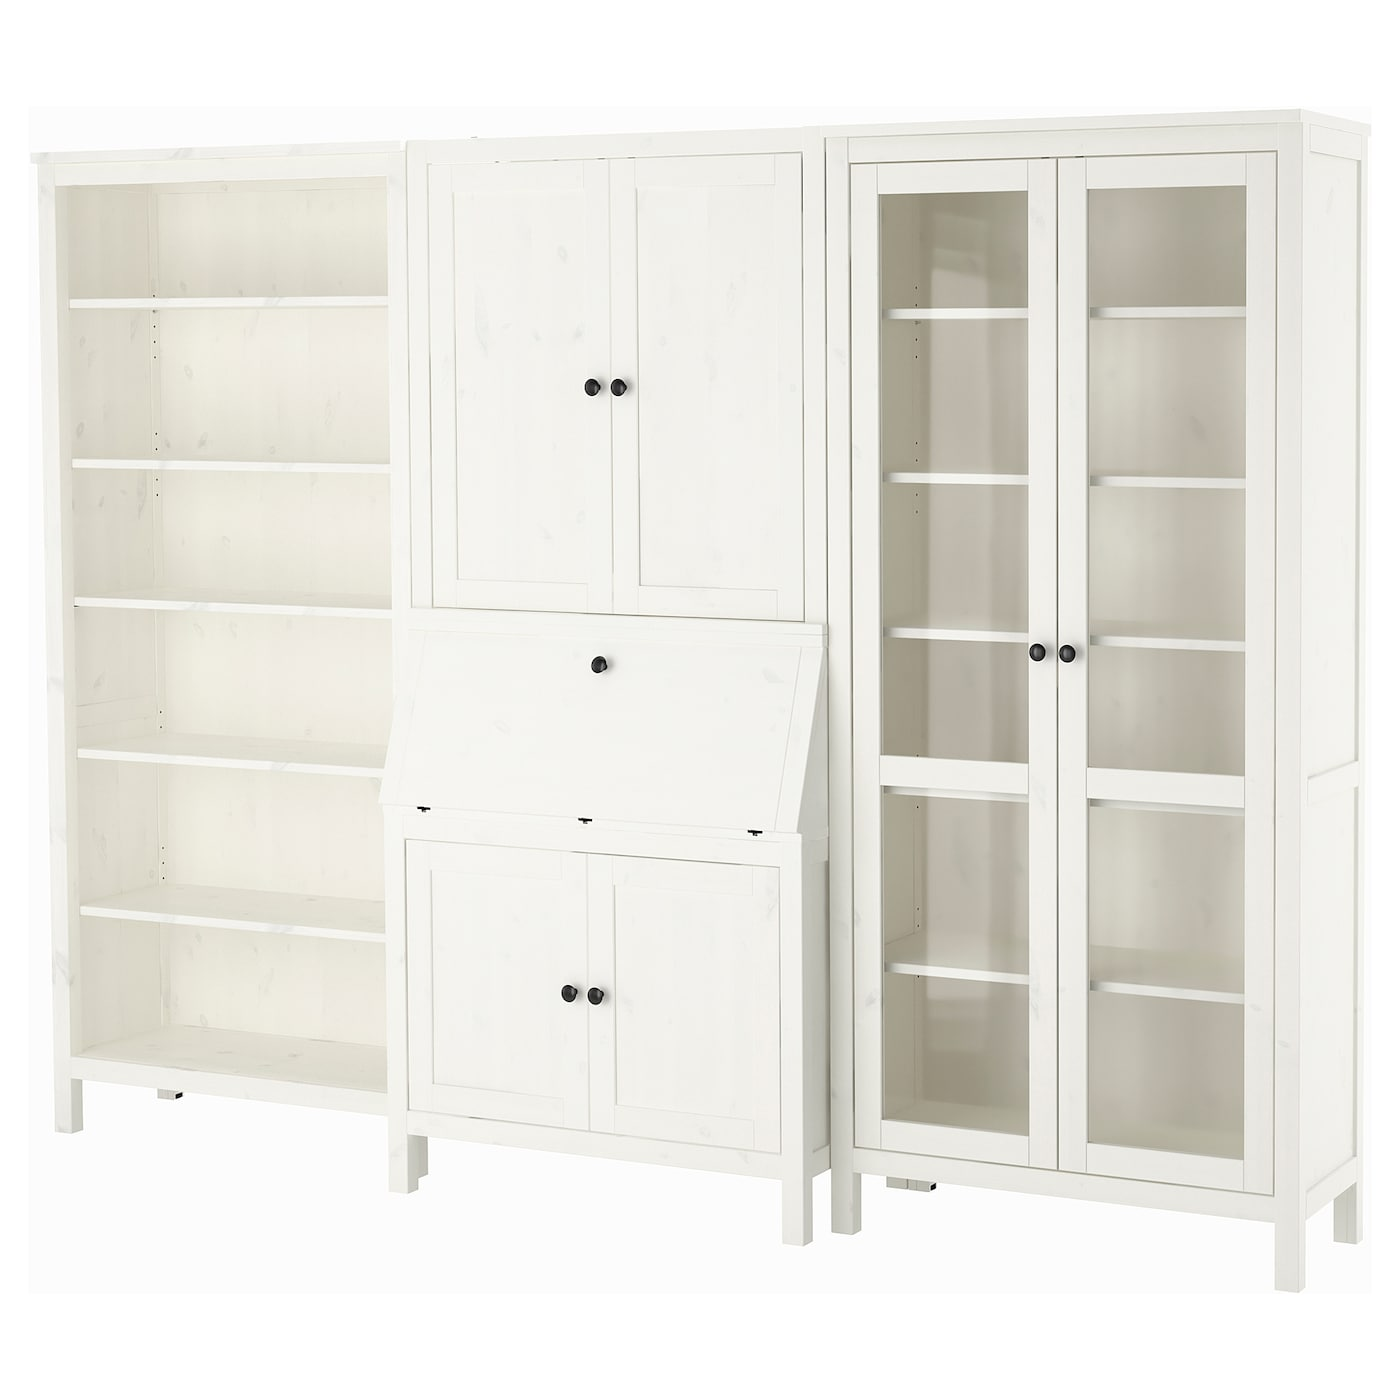 hemnes bureau with add on unit bookcase white stained glass 269x198 cm ikea. Black Bedroom Furniture Sets. Home Design Ideas